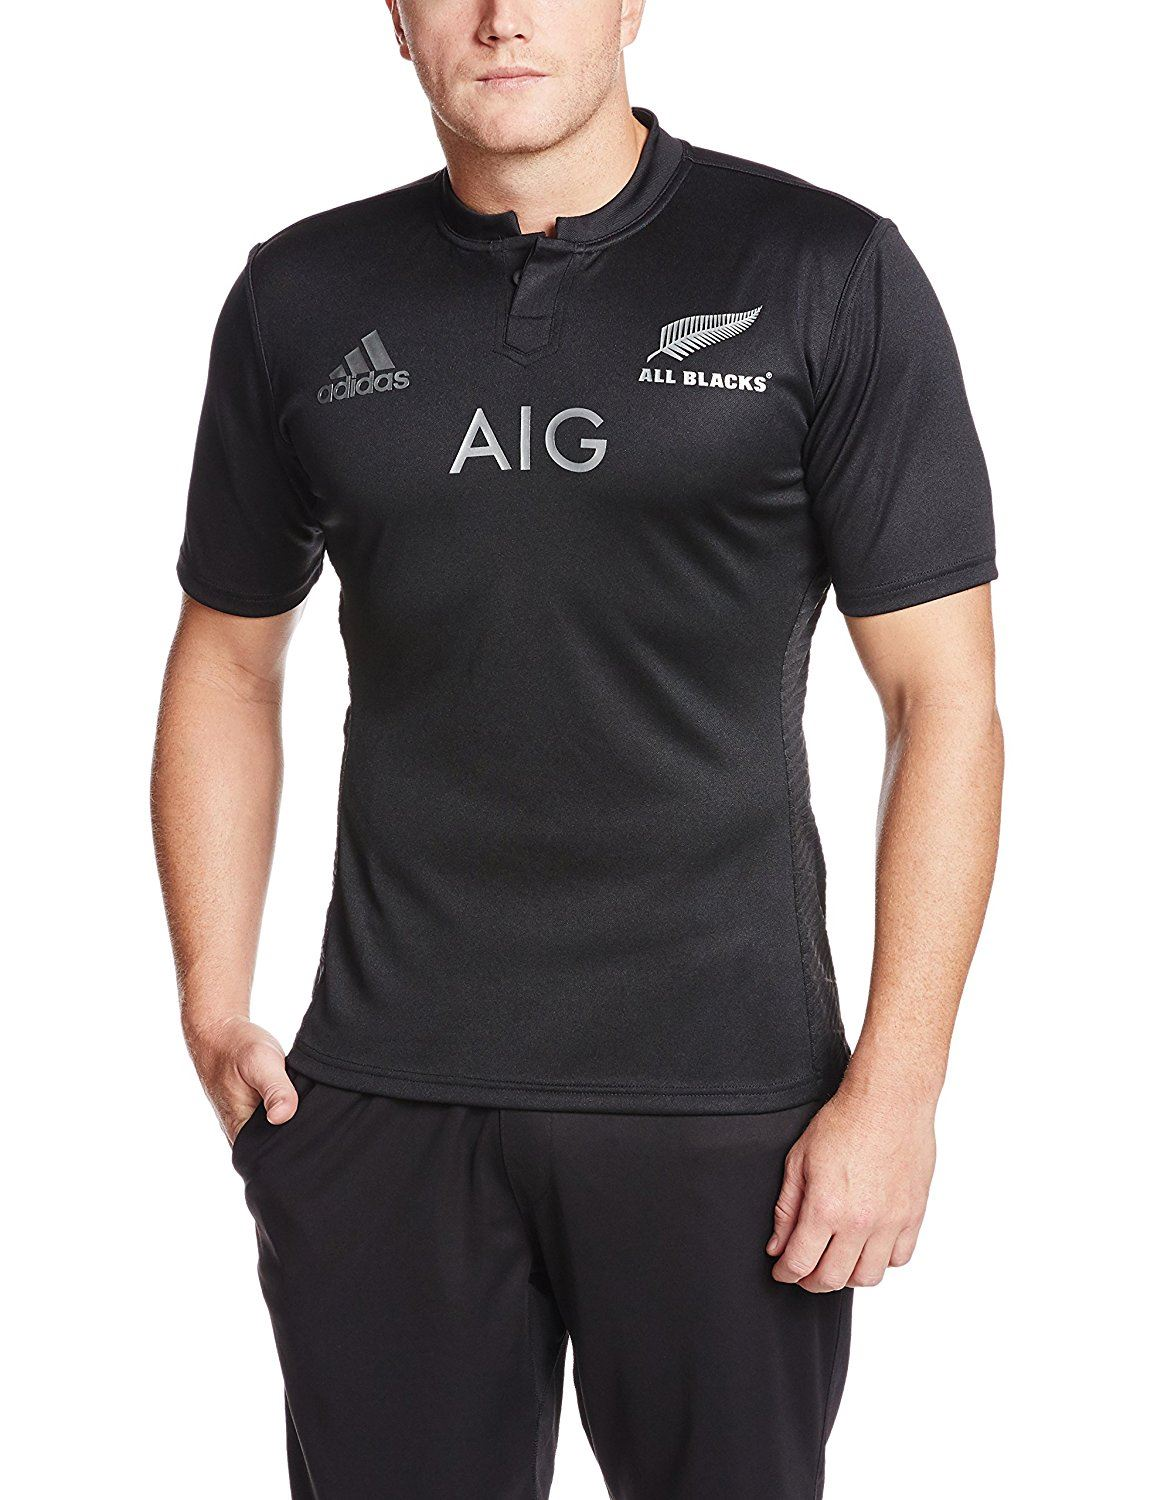 a6956443b3e adidas NEW ZEALAND ALL BLACKS JERSEY 3XL RUGBY MEN'S CLIMALITE WORLD CUP